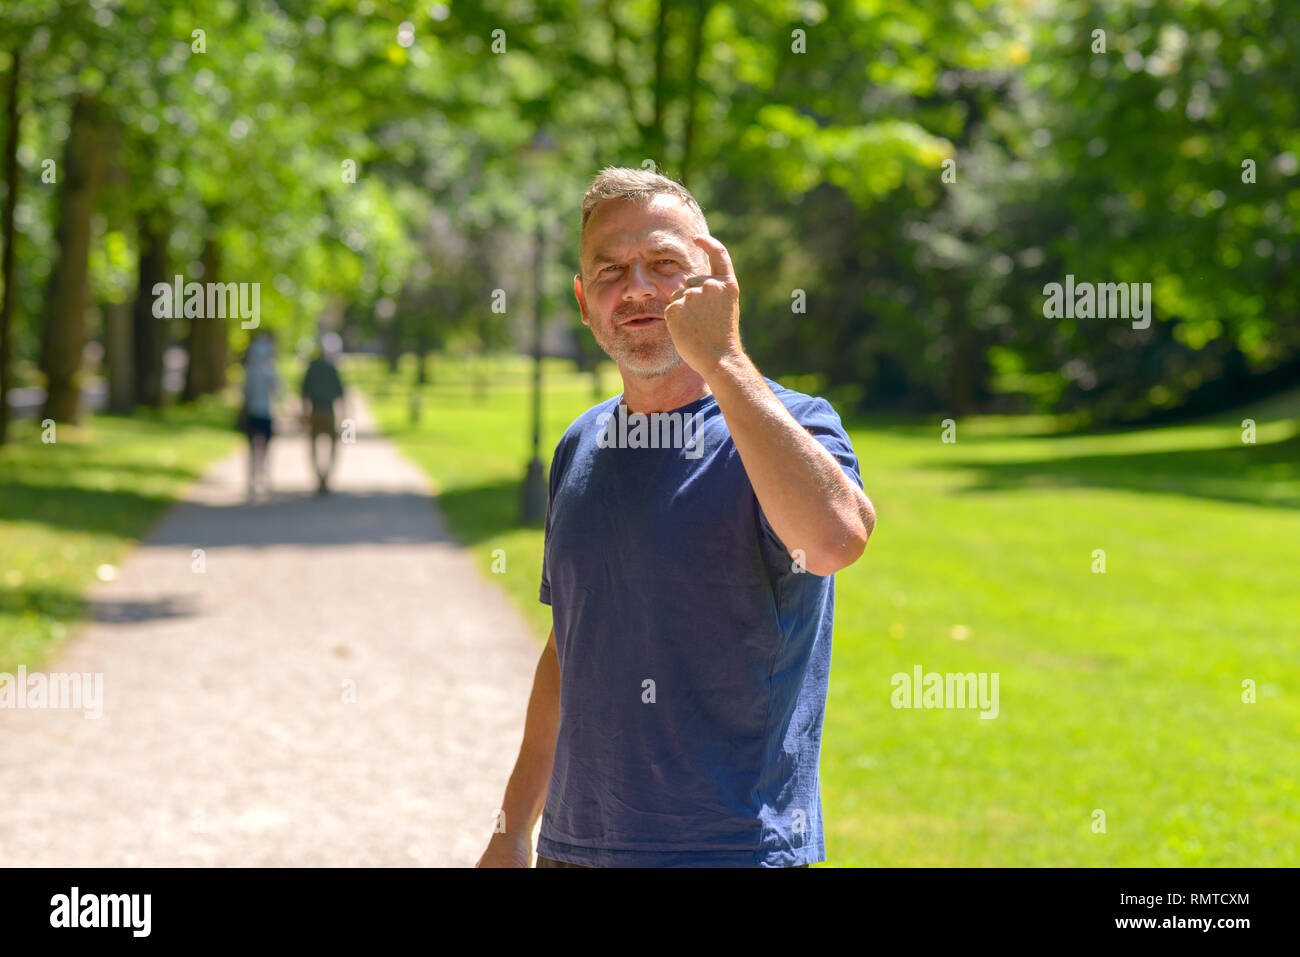 Fit middle aged man out jogging in a wooded green spring park pausing to turn and gesture with his finger at the camera - Stock Image